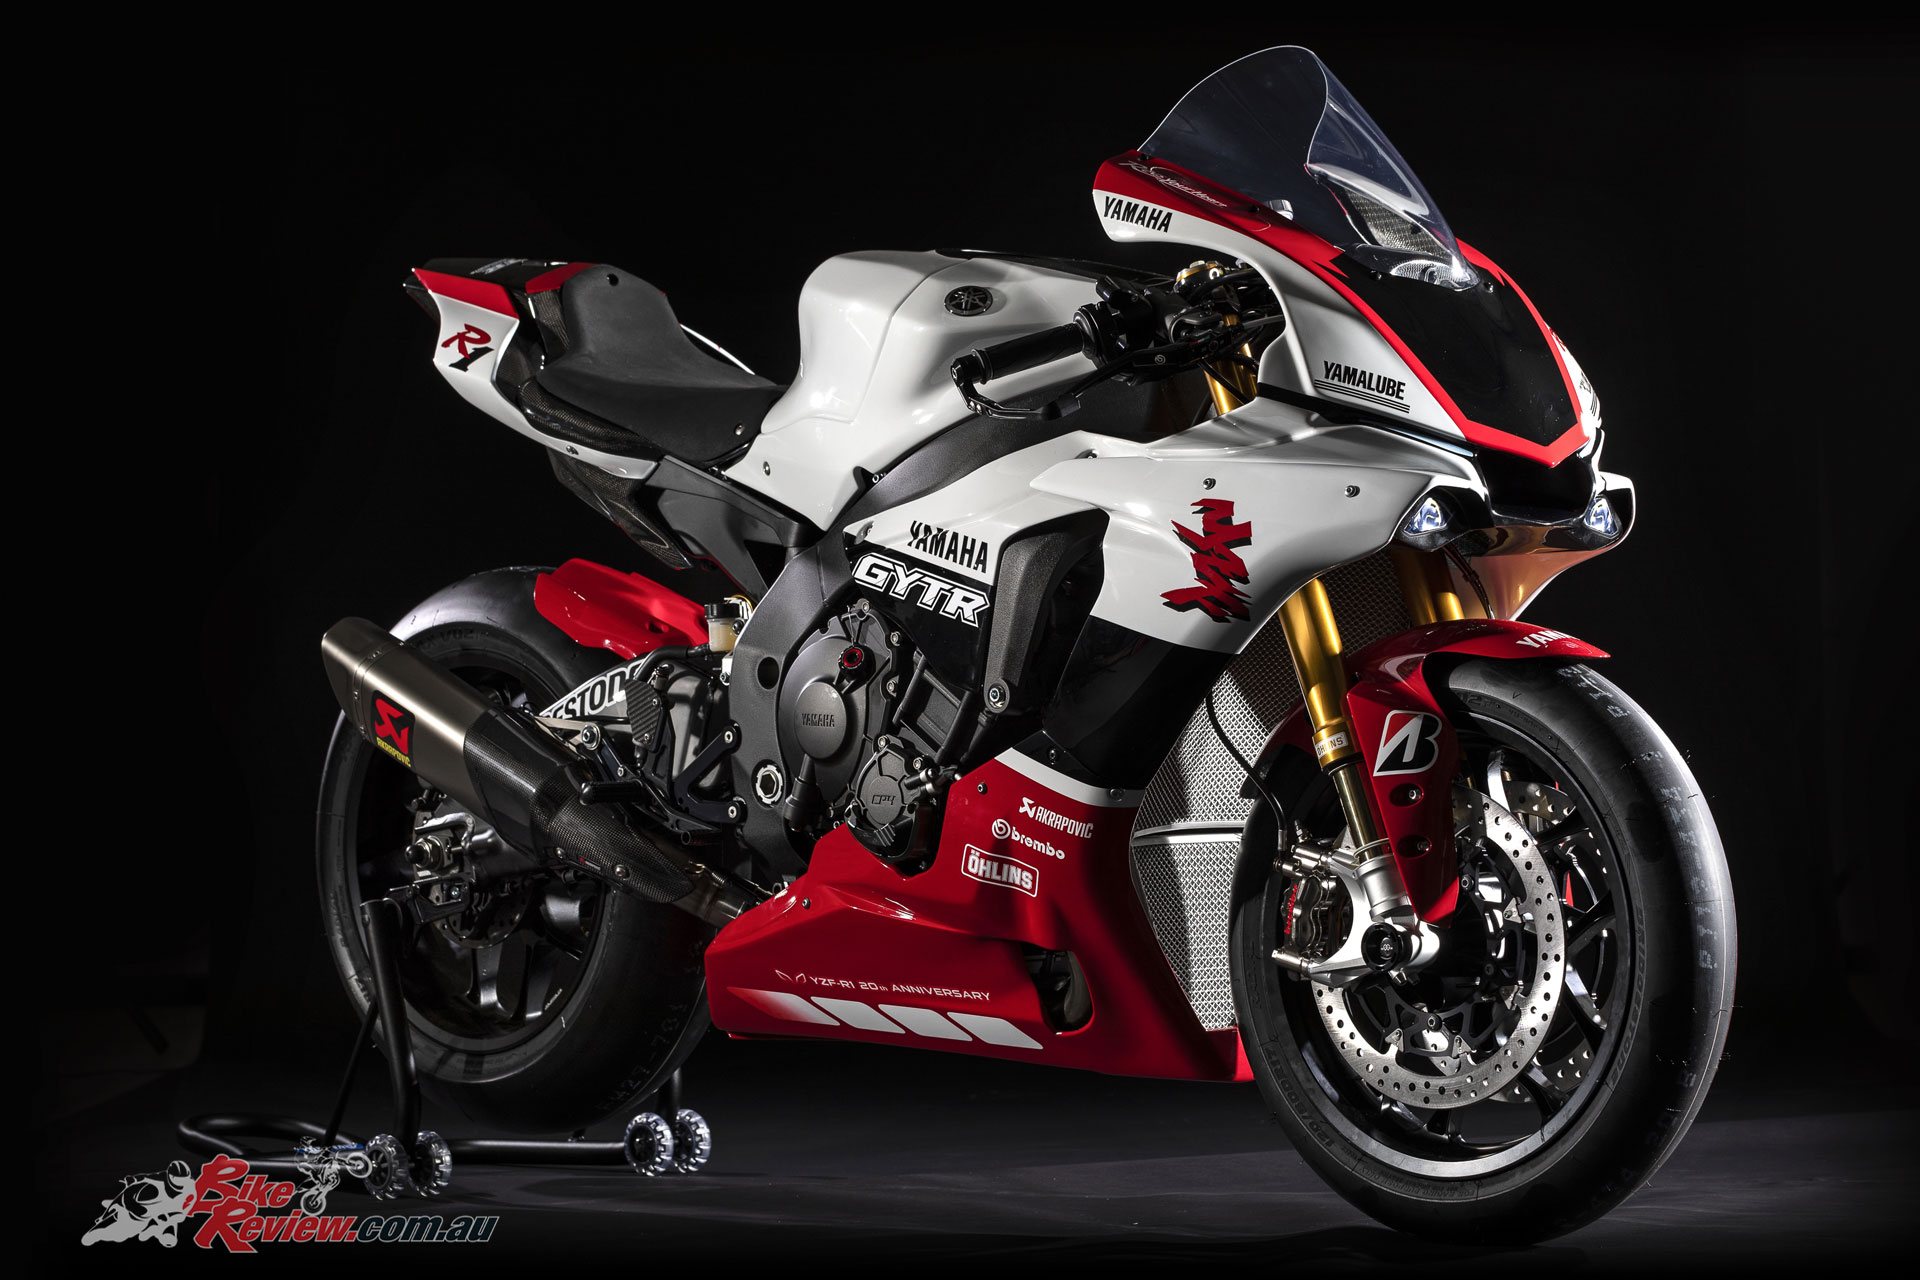 special edition 2019 yamaha yzf r1 gytr bike review. Black Bedroom Furniture Sets. Home Design Ideas